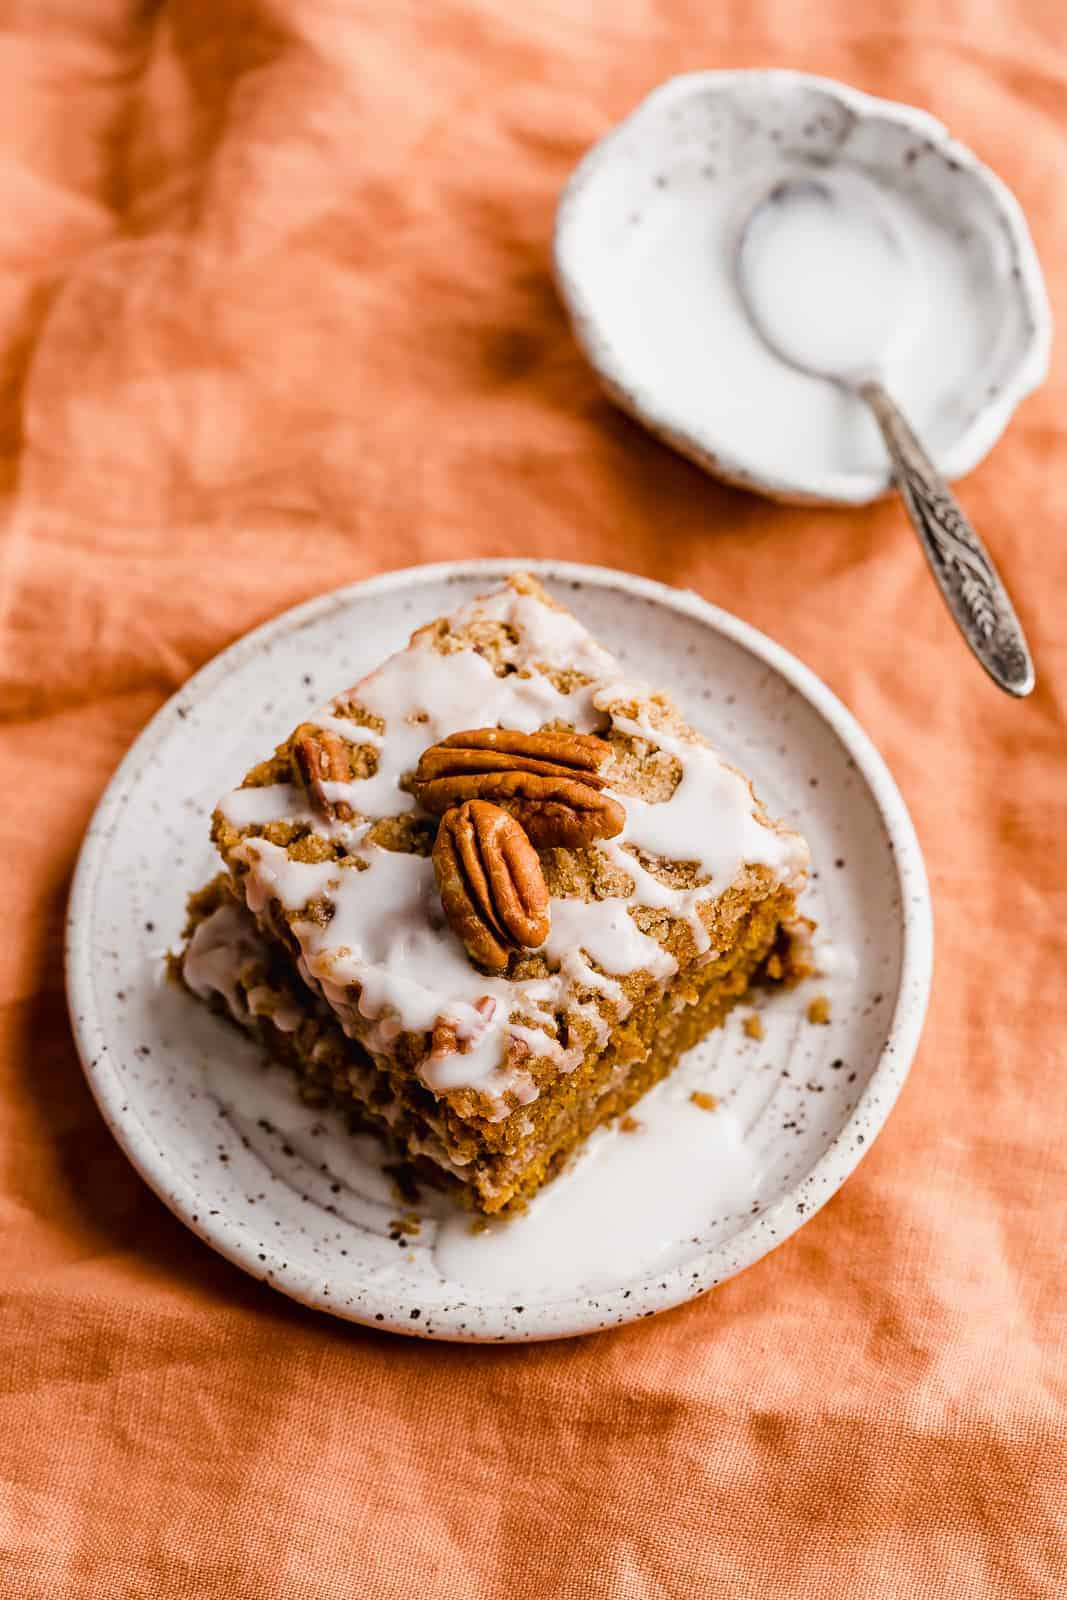 A slice of Pumpkin Coffee Cake on a white plate sitting on an orange linen napkin.